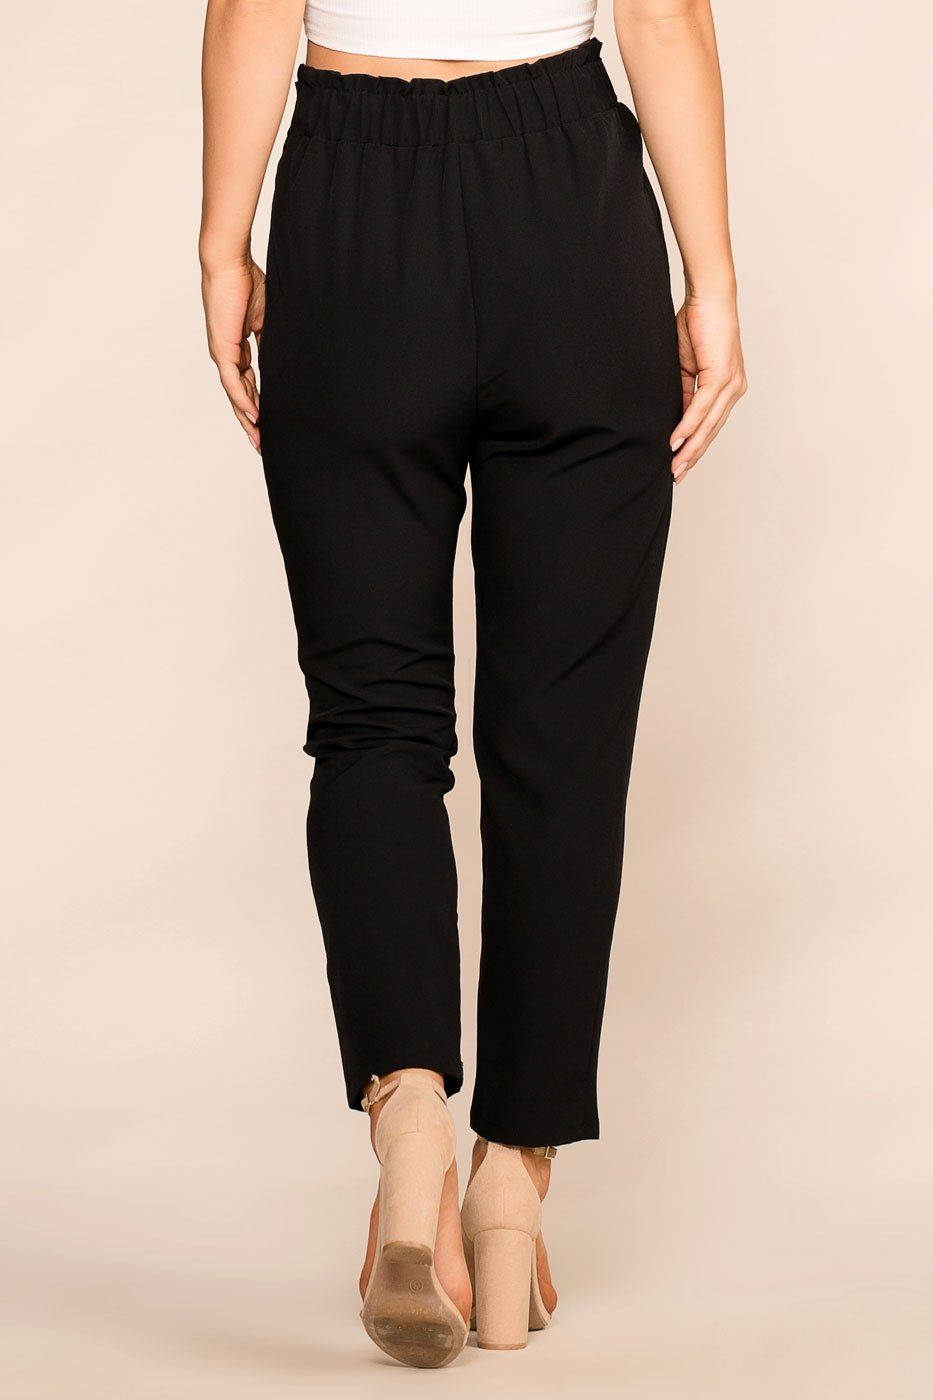 Black High Waisted Pants Shop Priceless | Black | High Waisted Pants | Womens